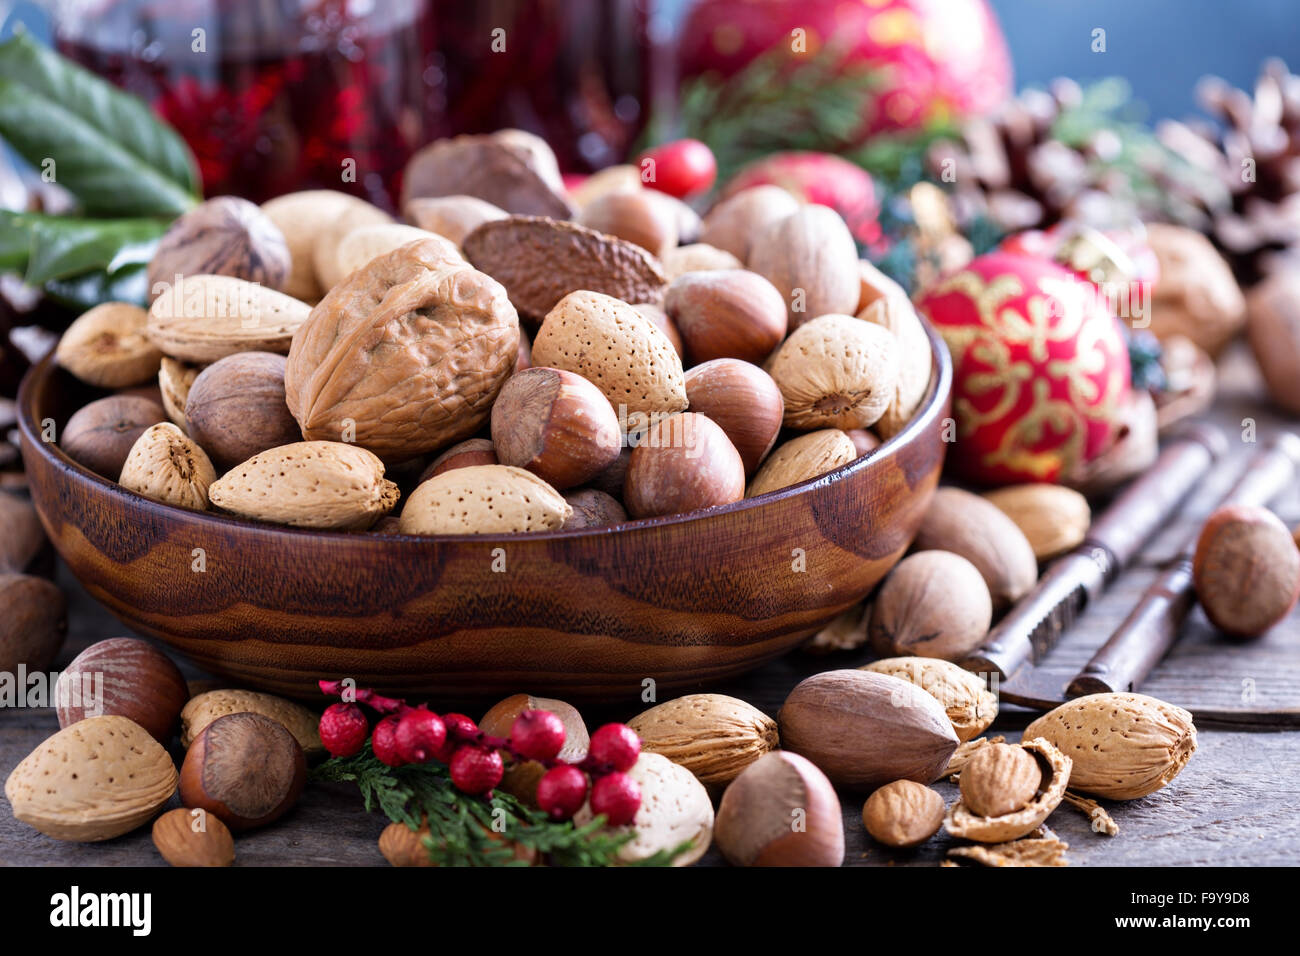 Variety of nuts with shells in a brown bowl - Stock Image